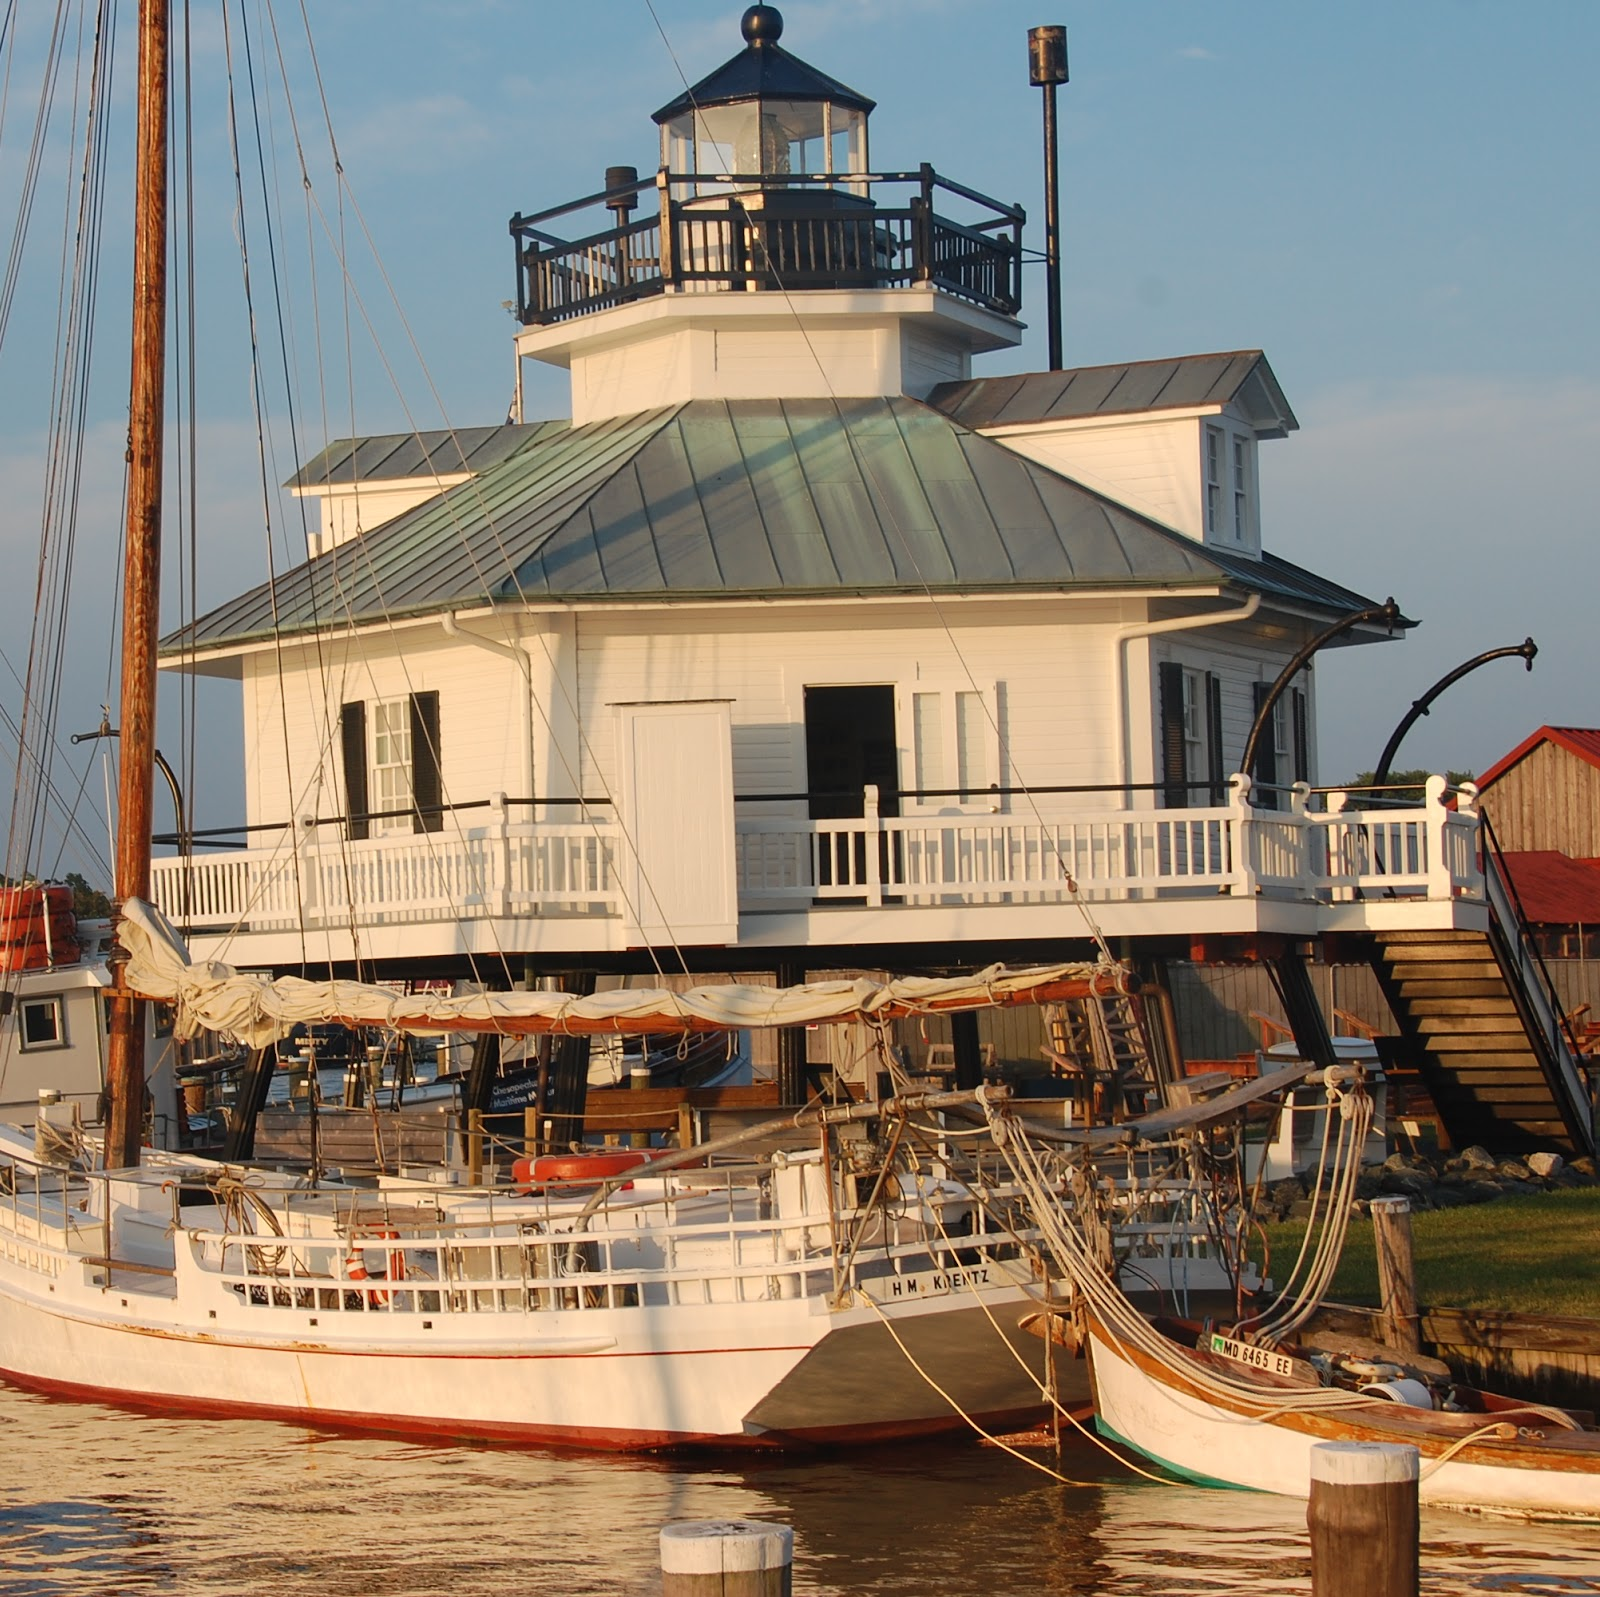 Chesapeake Bay Museum